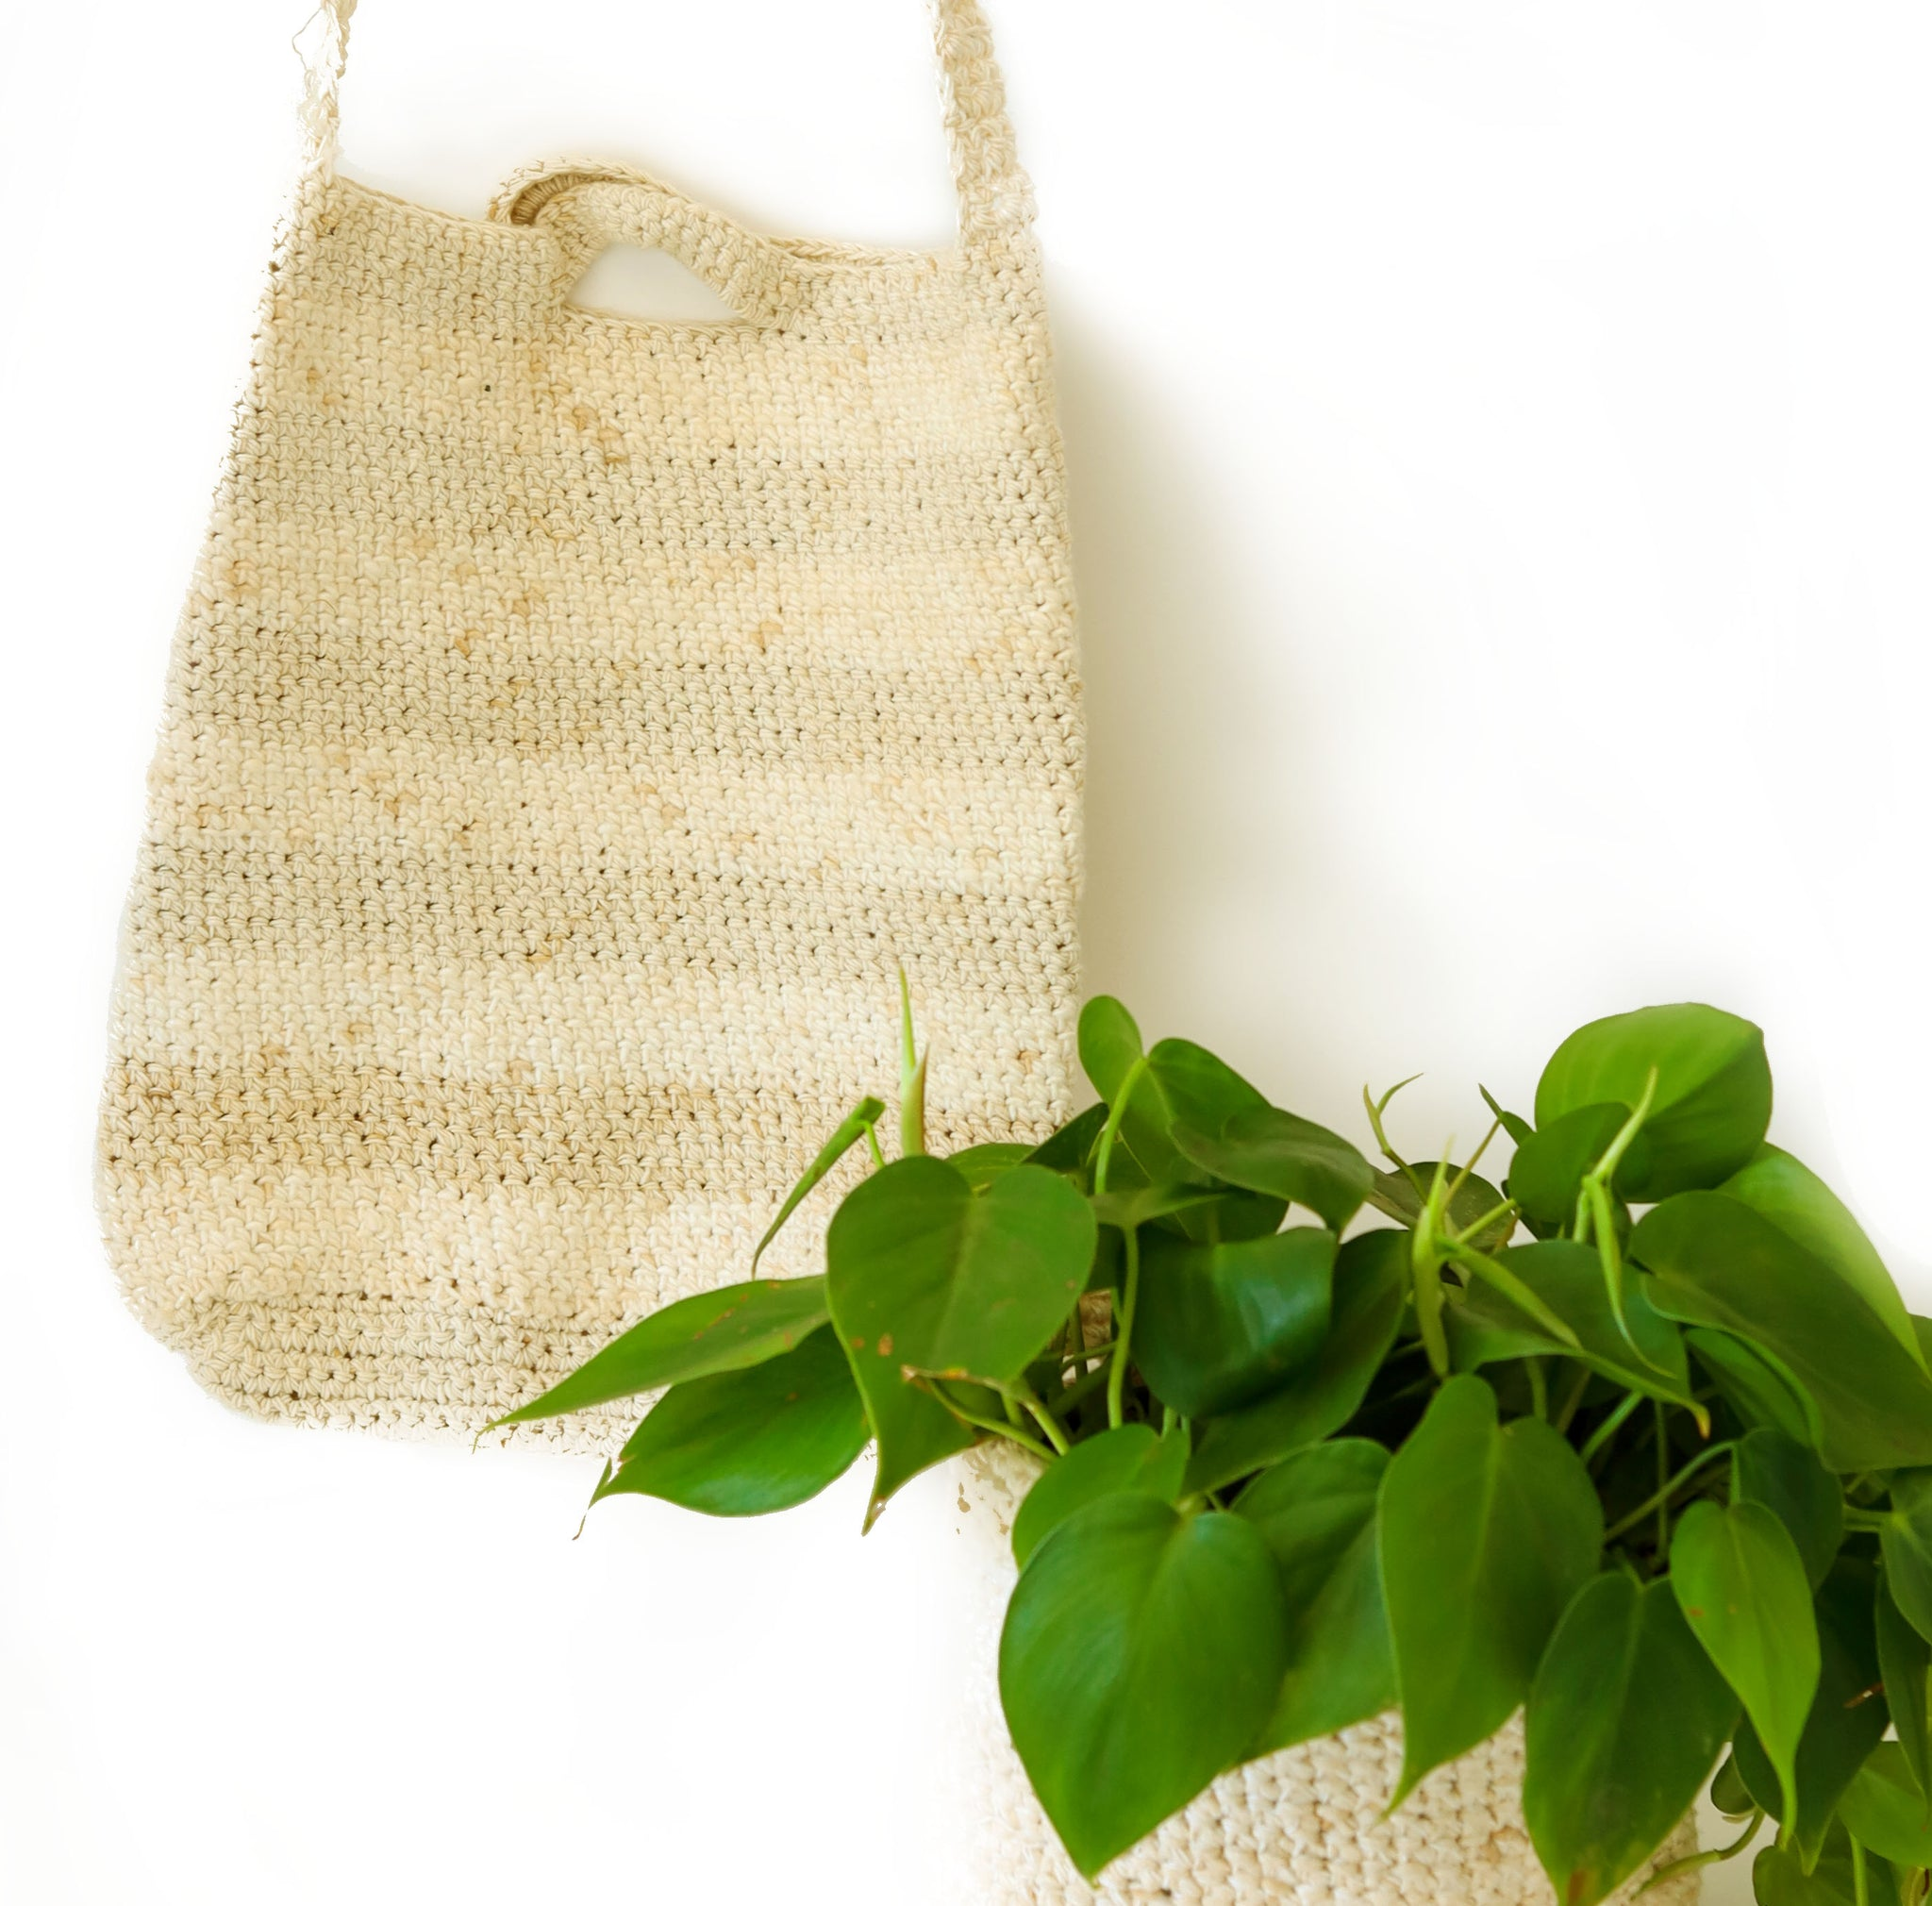 woven multi-purpose bag